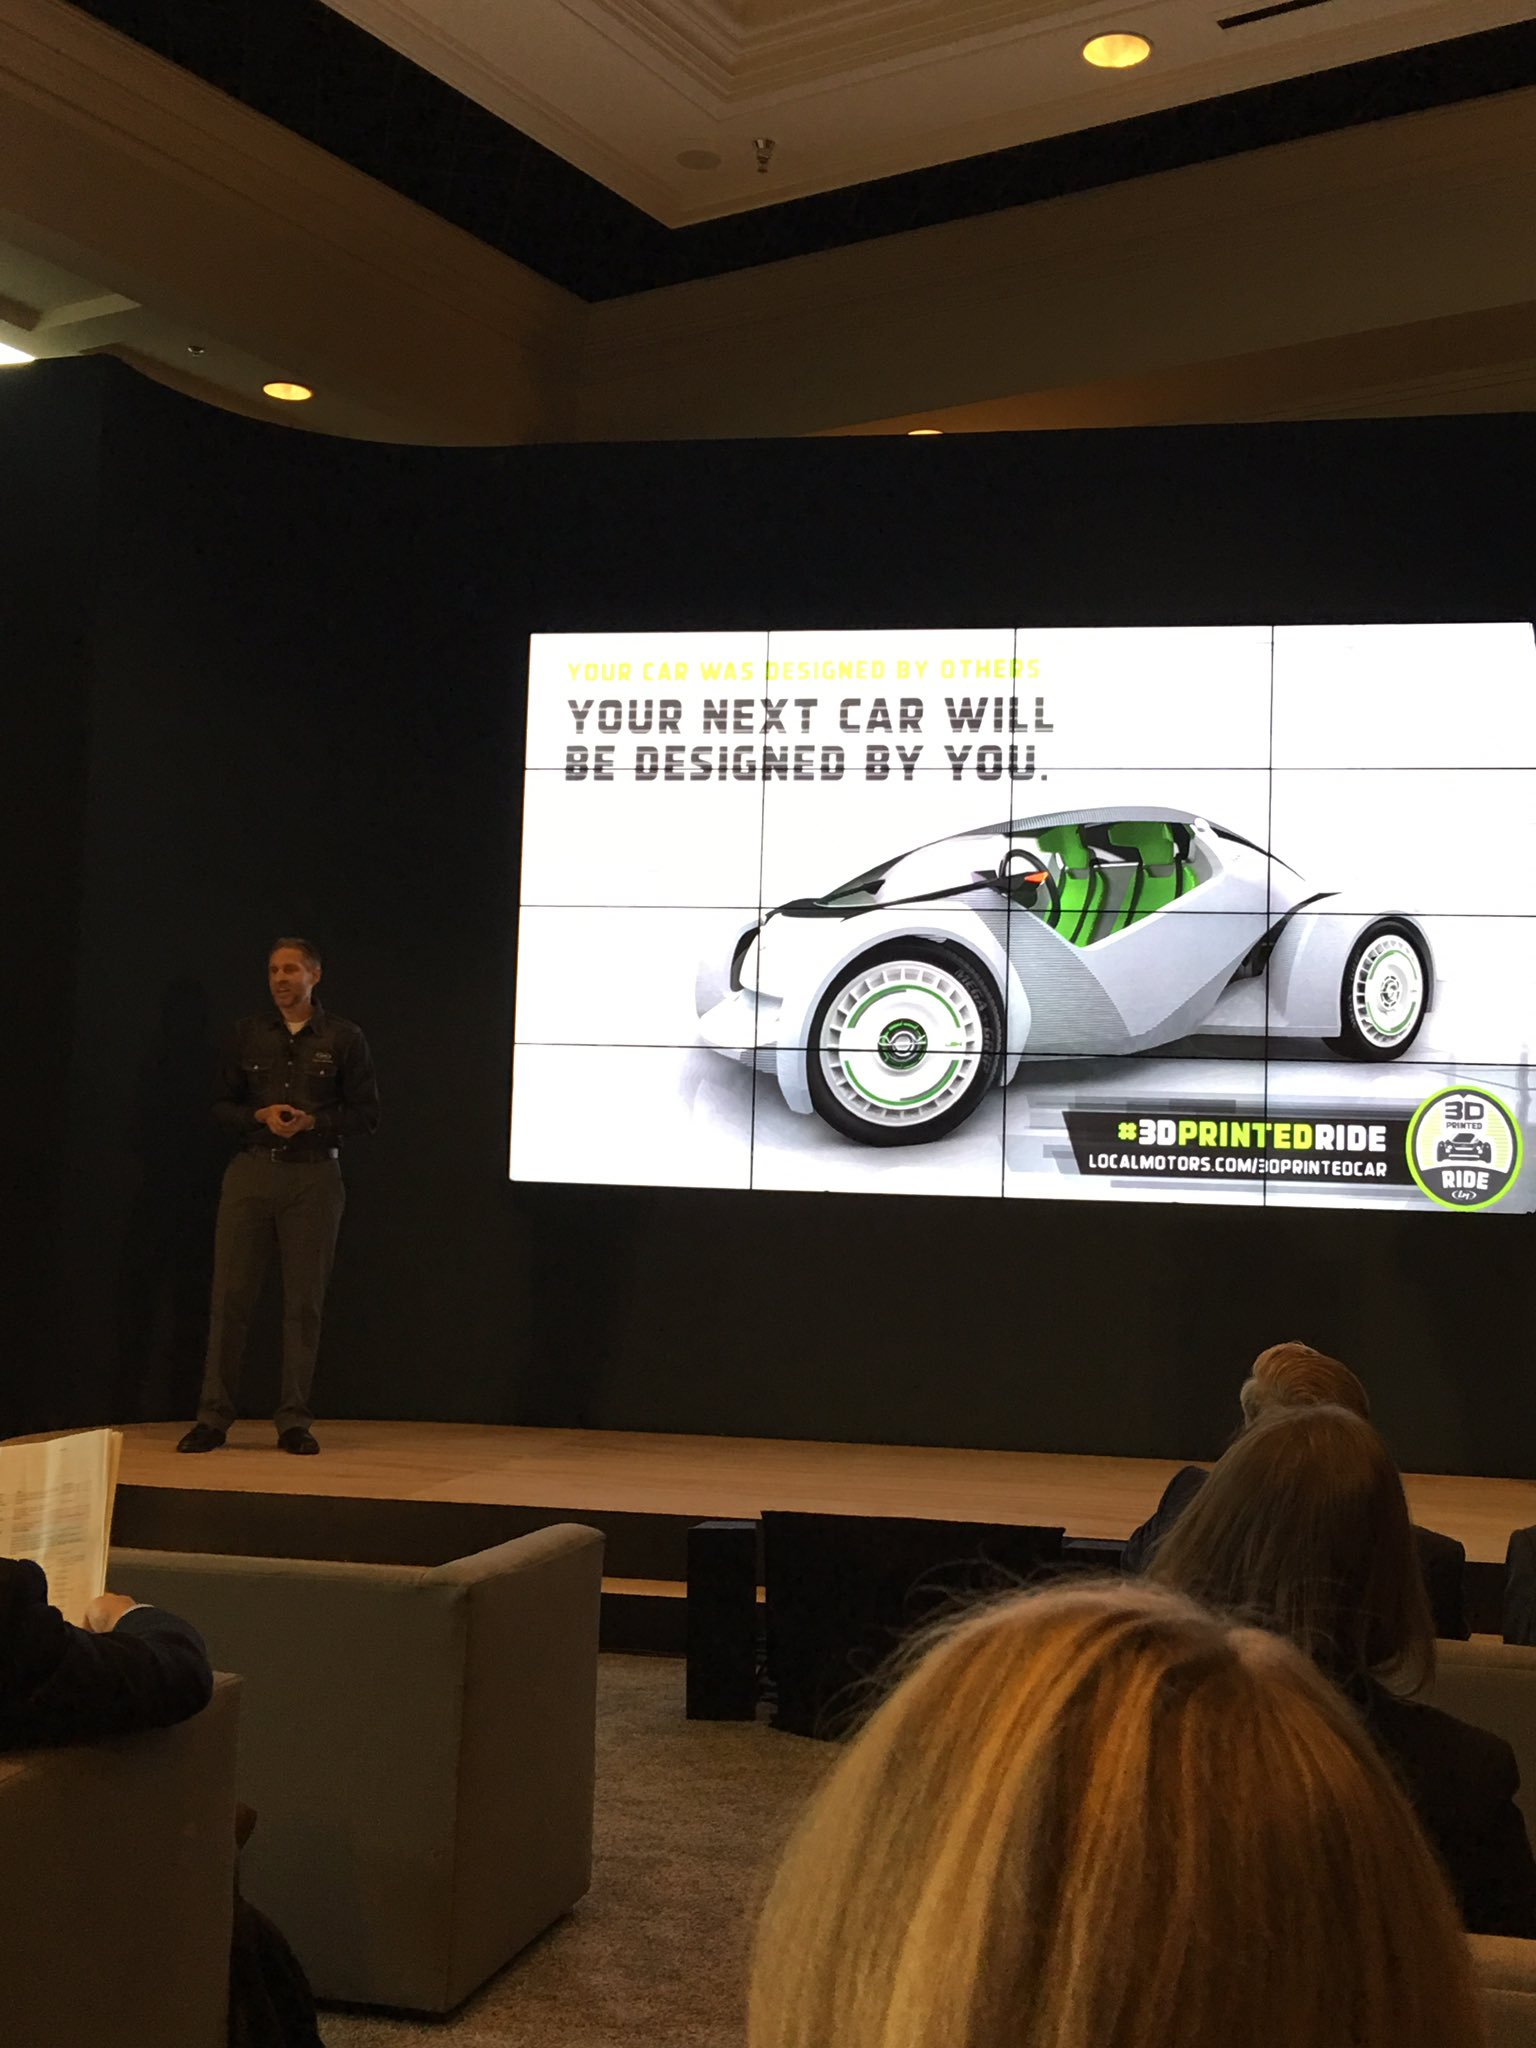 Your next car will be designed by you. @localmotors @IBMAutomotive #ibmwow https://t.co/kQnwd4vMOJ